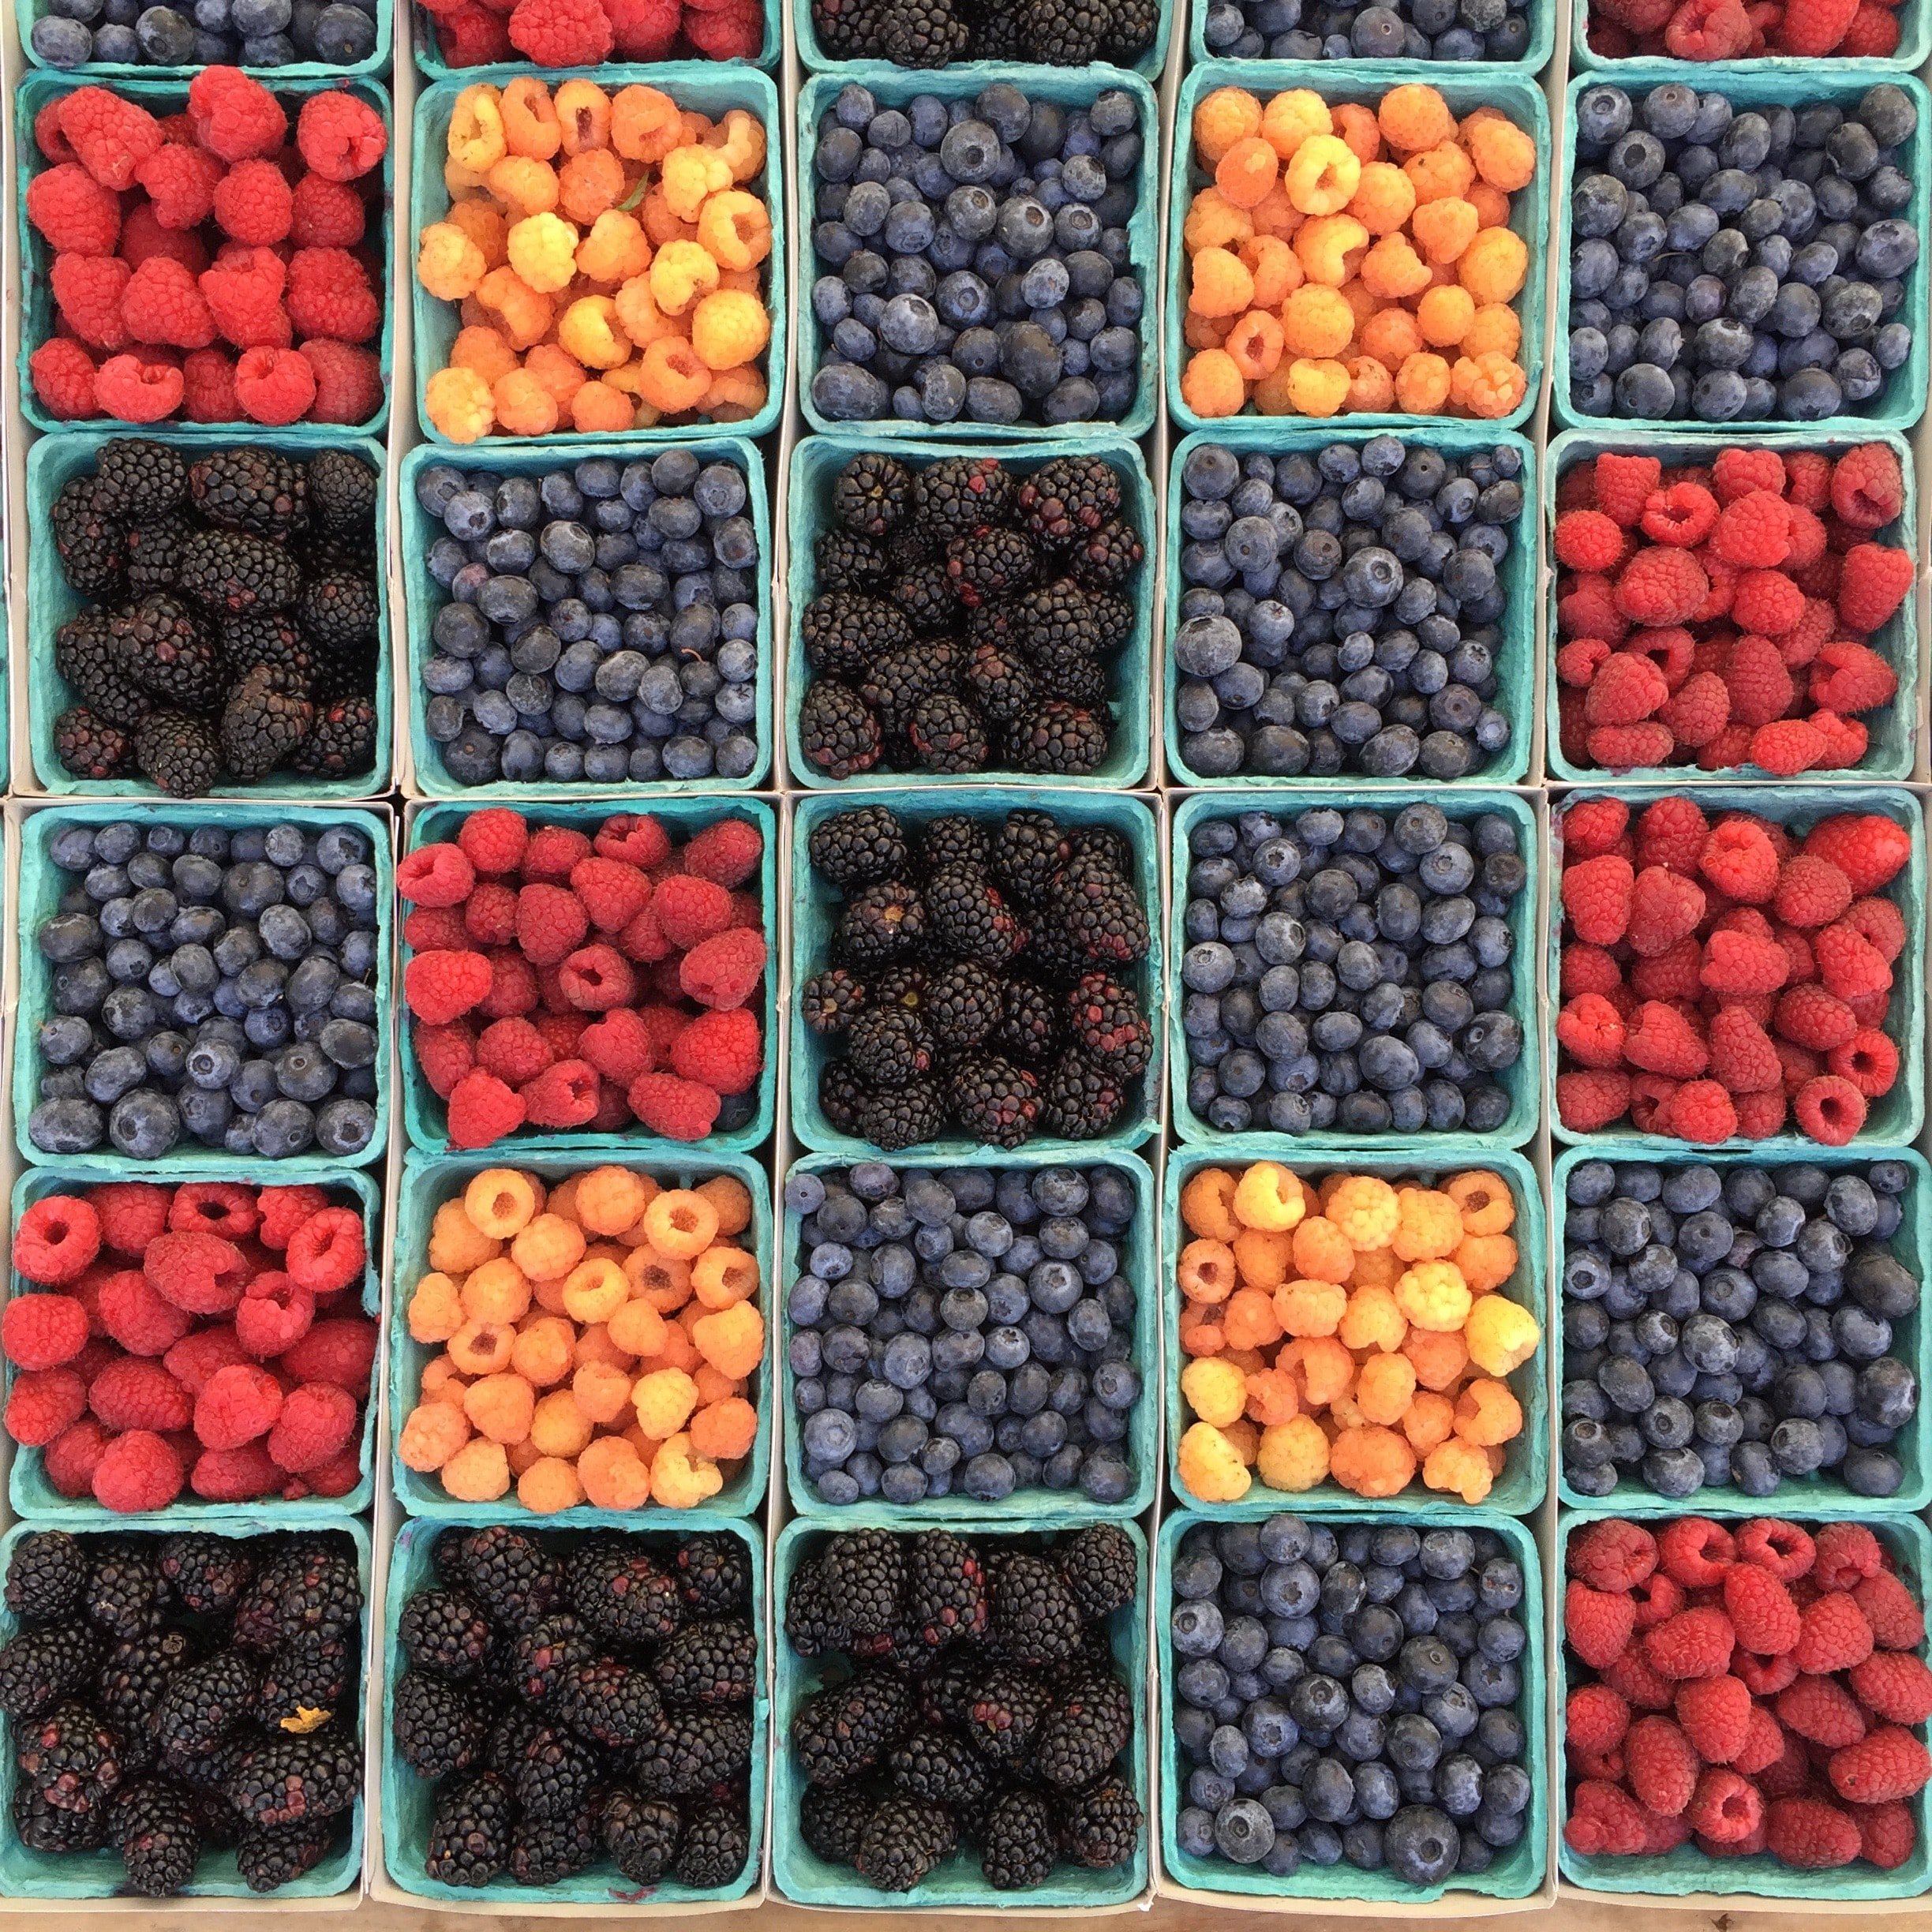 Most delicate berries to Consume on a KETO diet